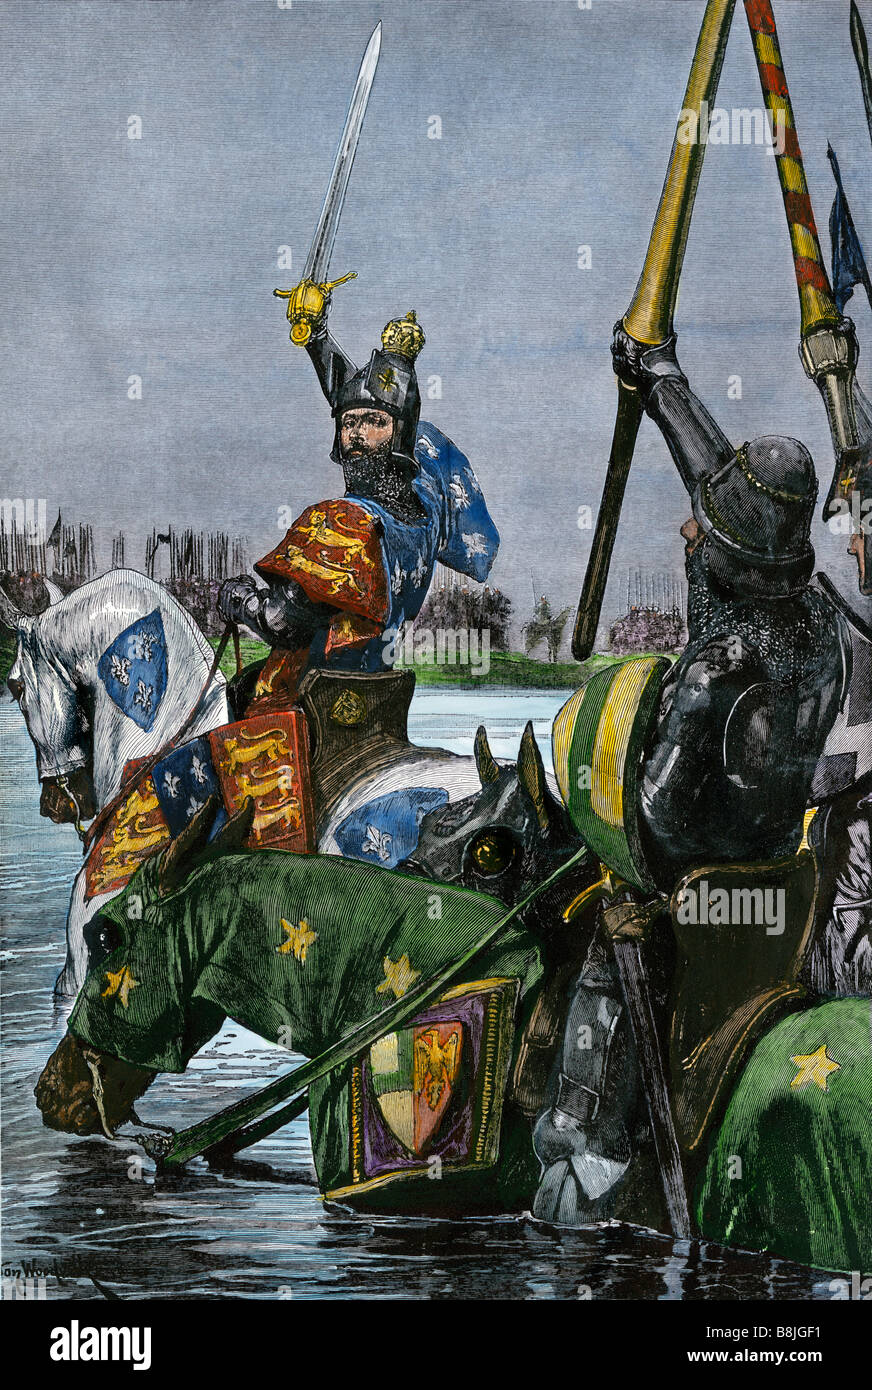 King Edward III of England leading the English army across the Somme in France. Hand-colored woodcut - Stock Image